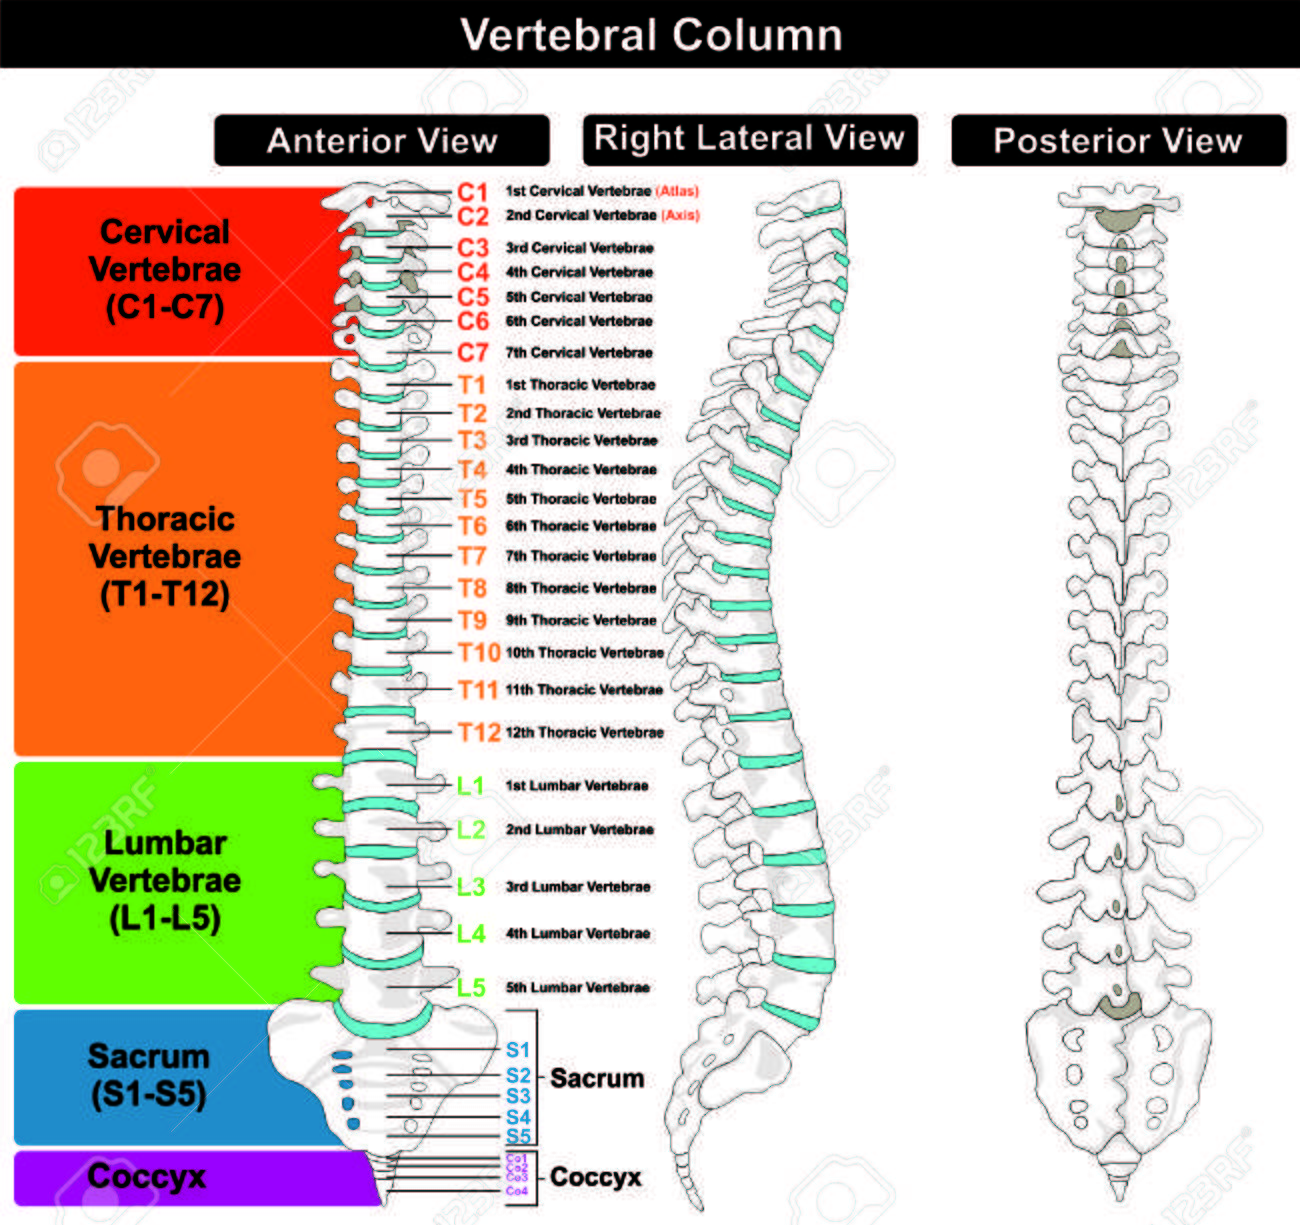 Vertebral Column Spine Structure Of Human Body Royalty Free Cliparts